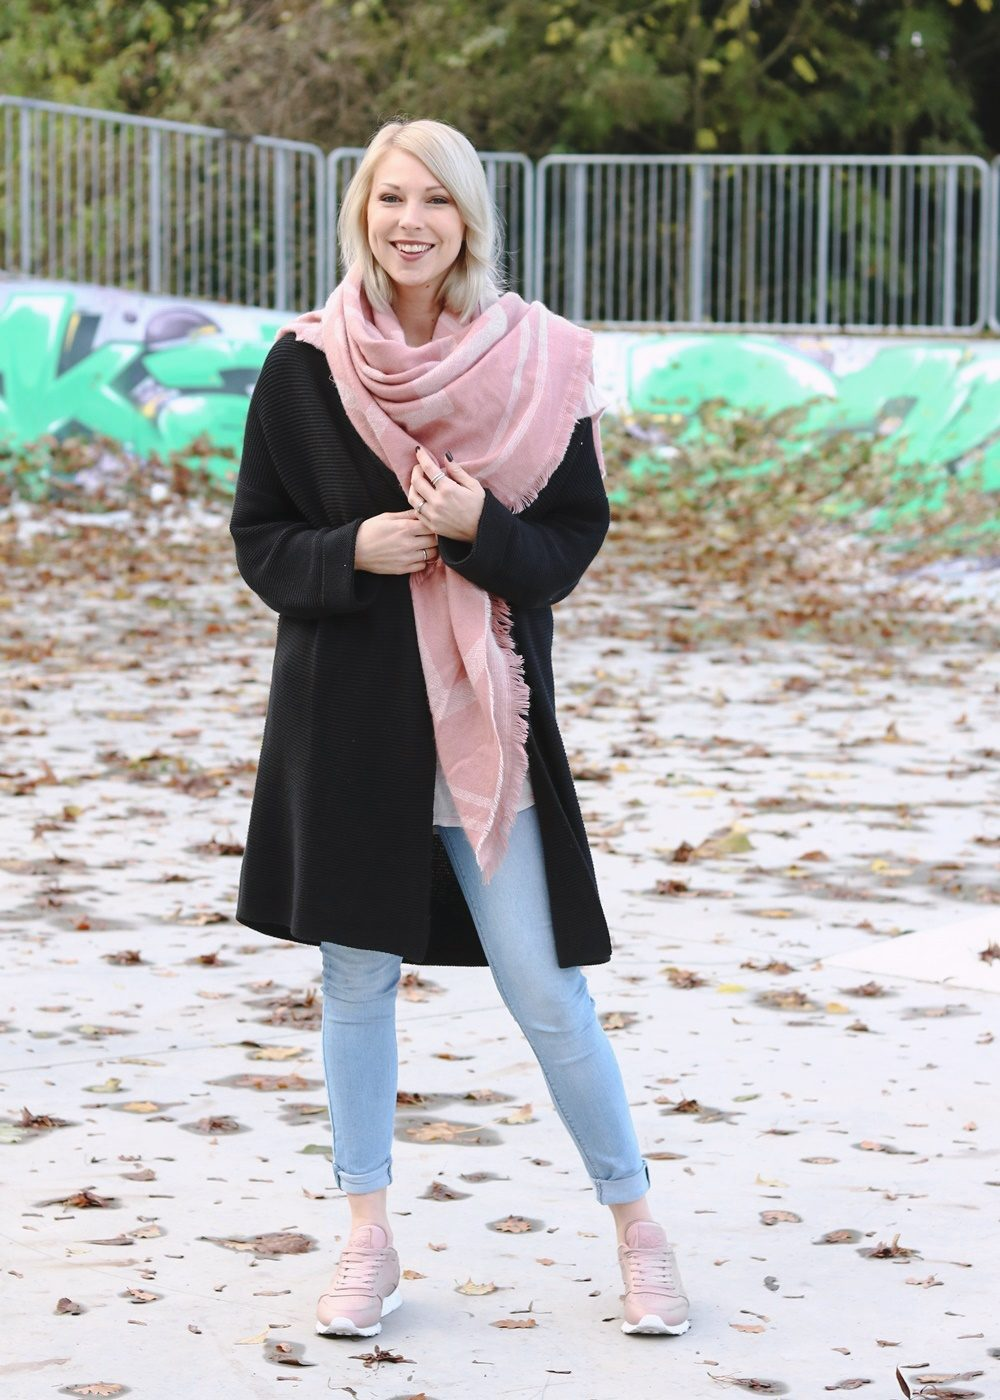 modeblogger-karlsruhe-outfit-herbst-skinnyjeans-rosa-schal-strickcardigan-reebok-classics-pearlized-metallic-2